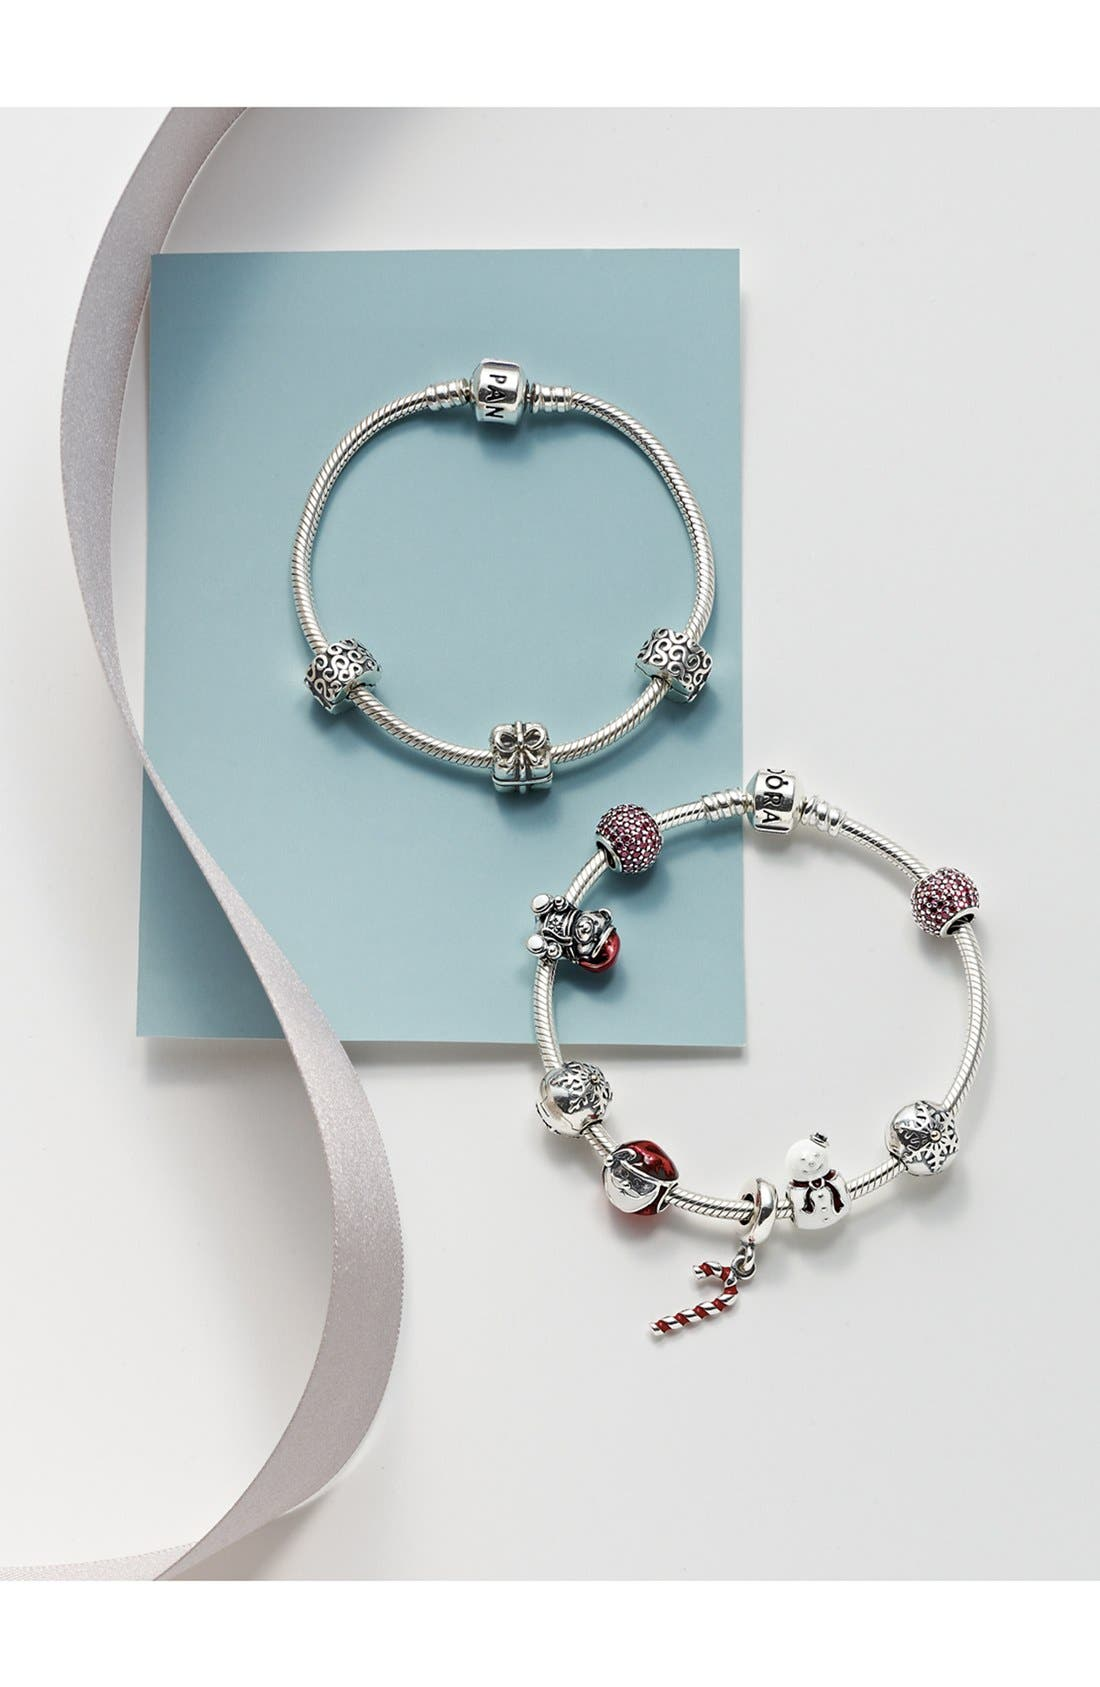 Alternate Image 3  - PANDORA Boxed Holiday Bracelet Gift Set (Limited Edition) ($160 Value)